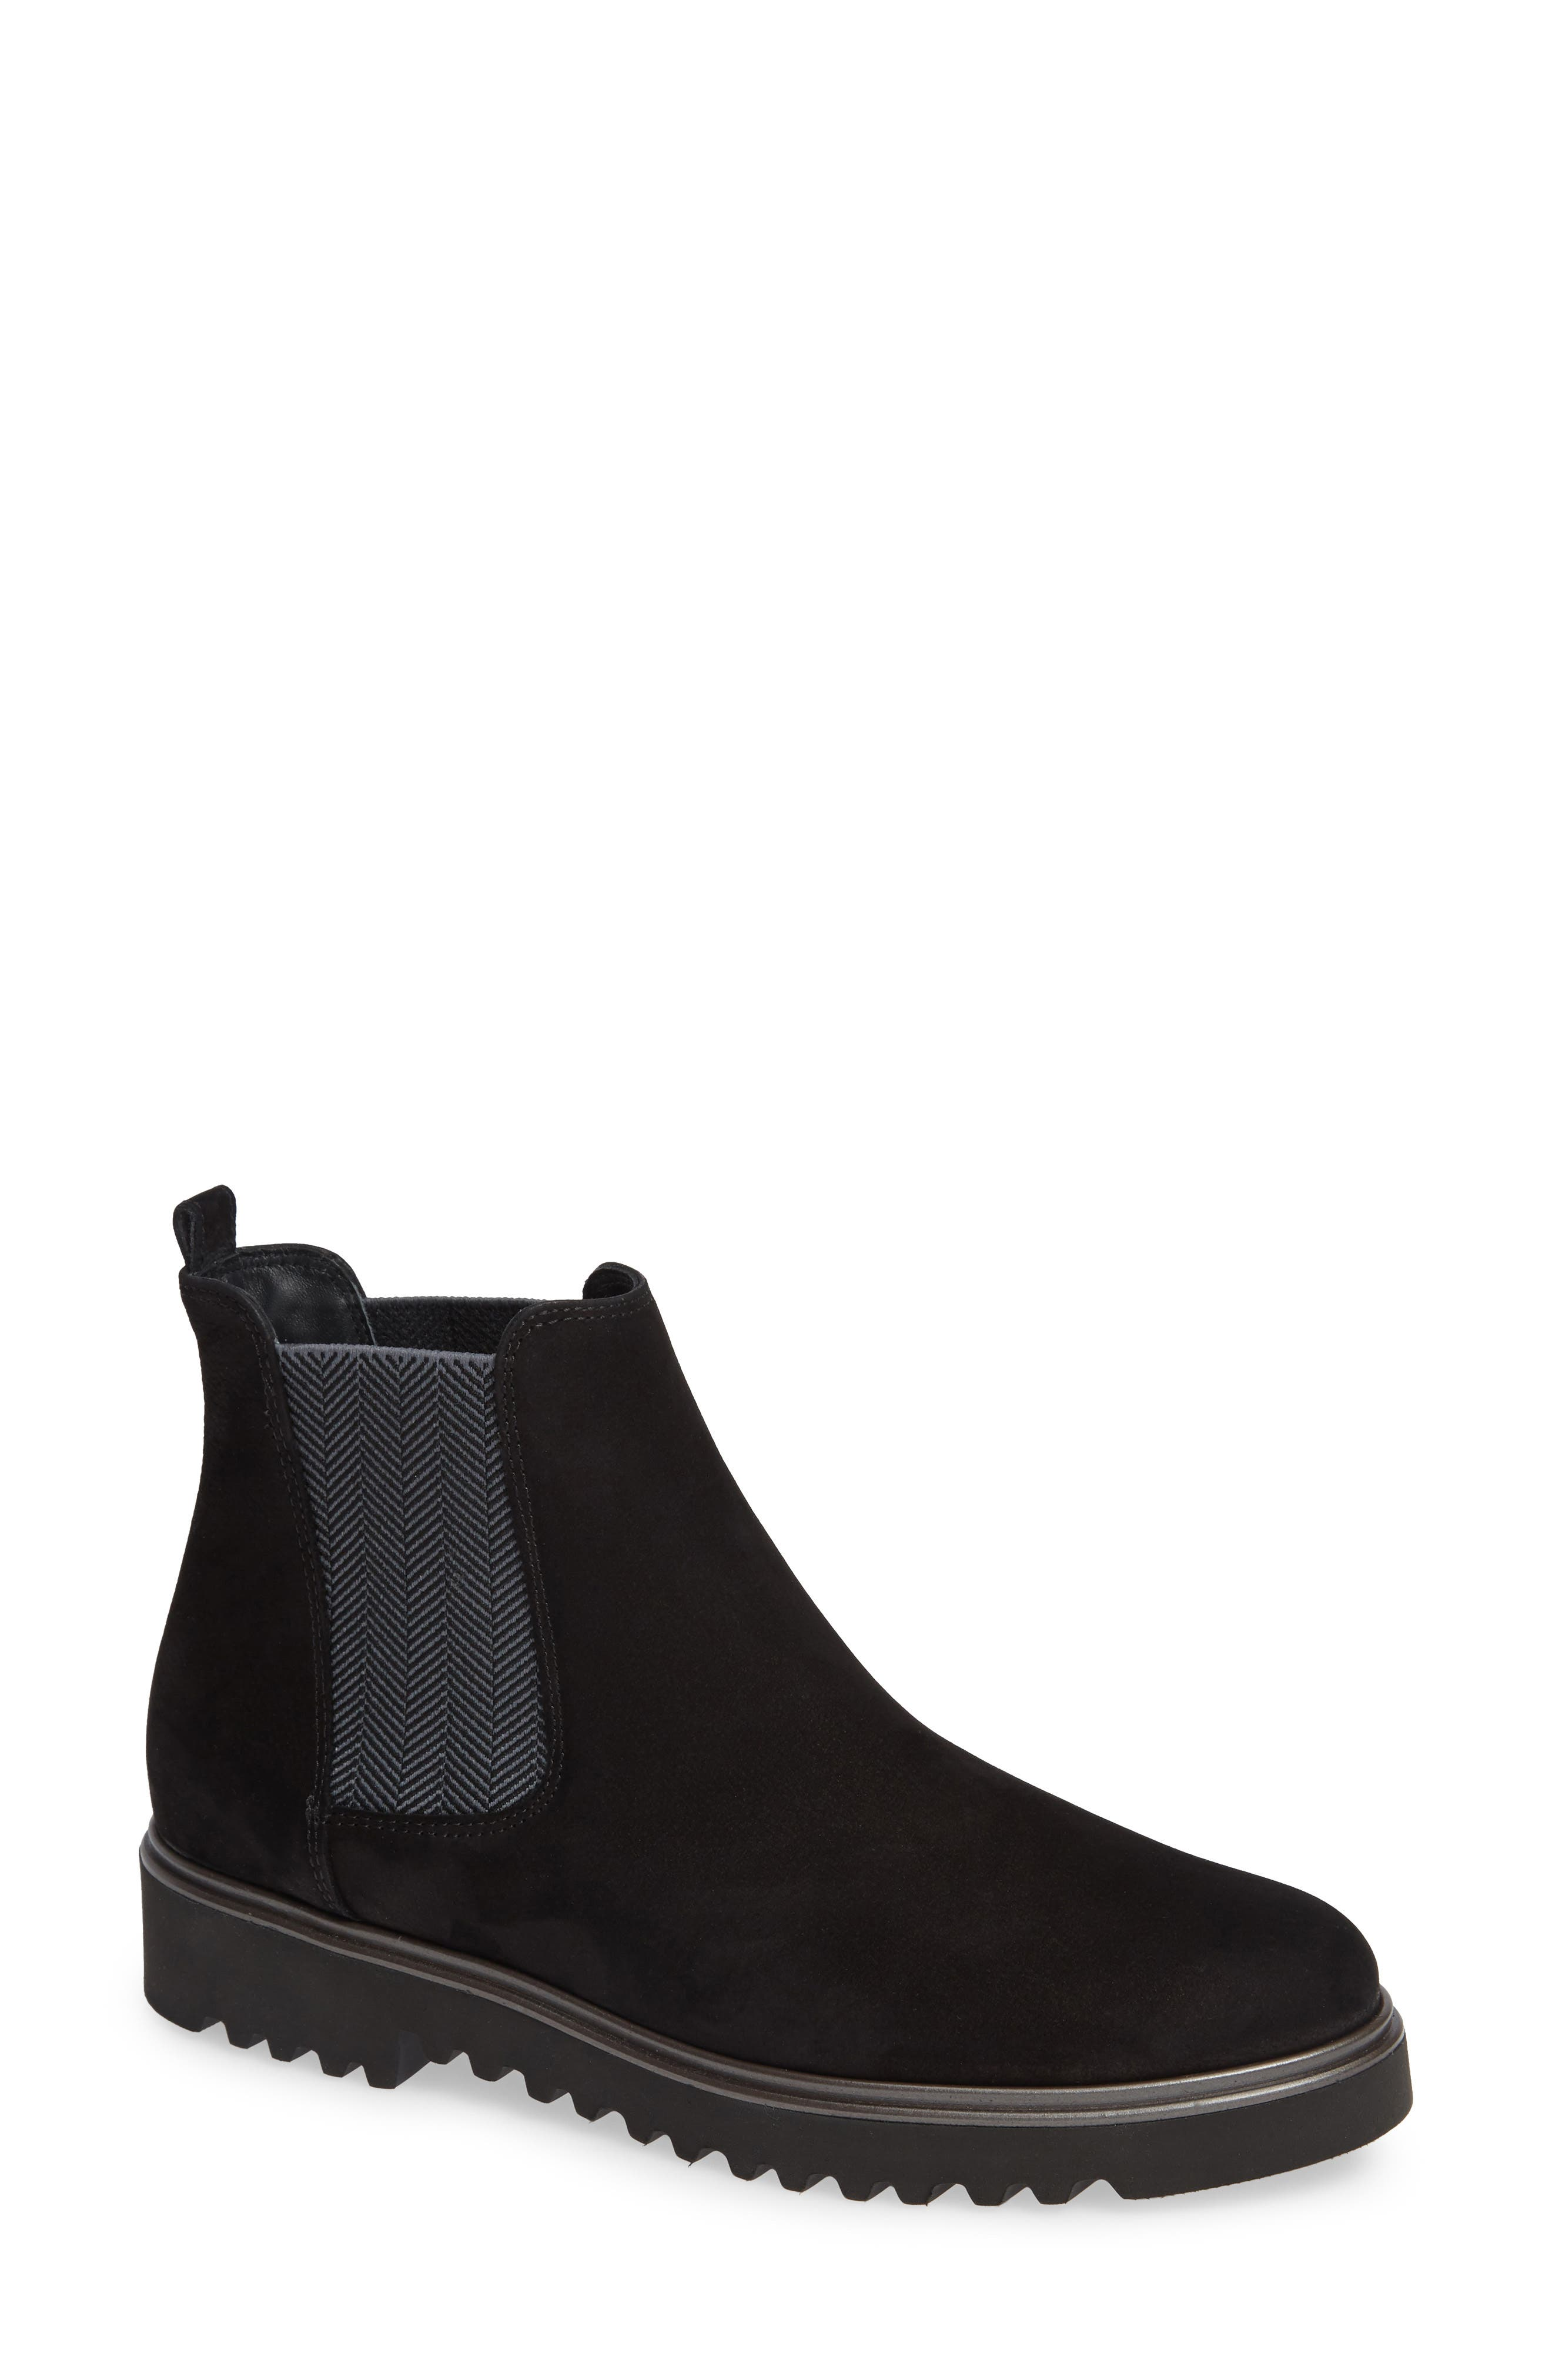 Paul Green Vienna Lugged Chelsea Bootie - Black